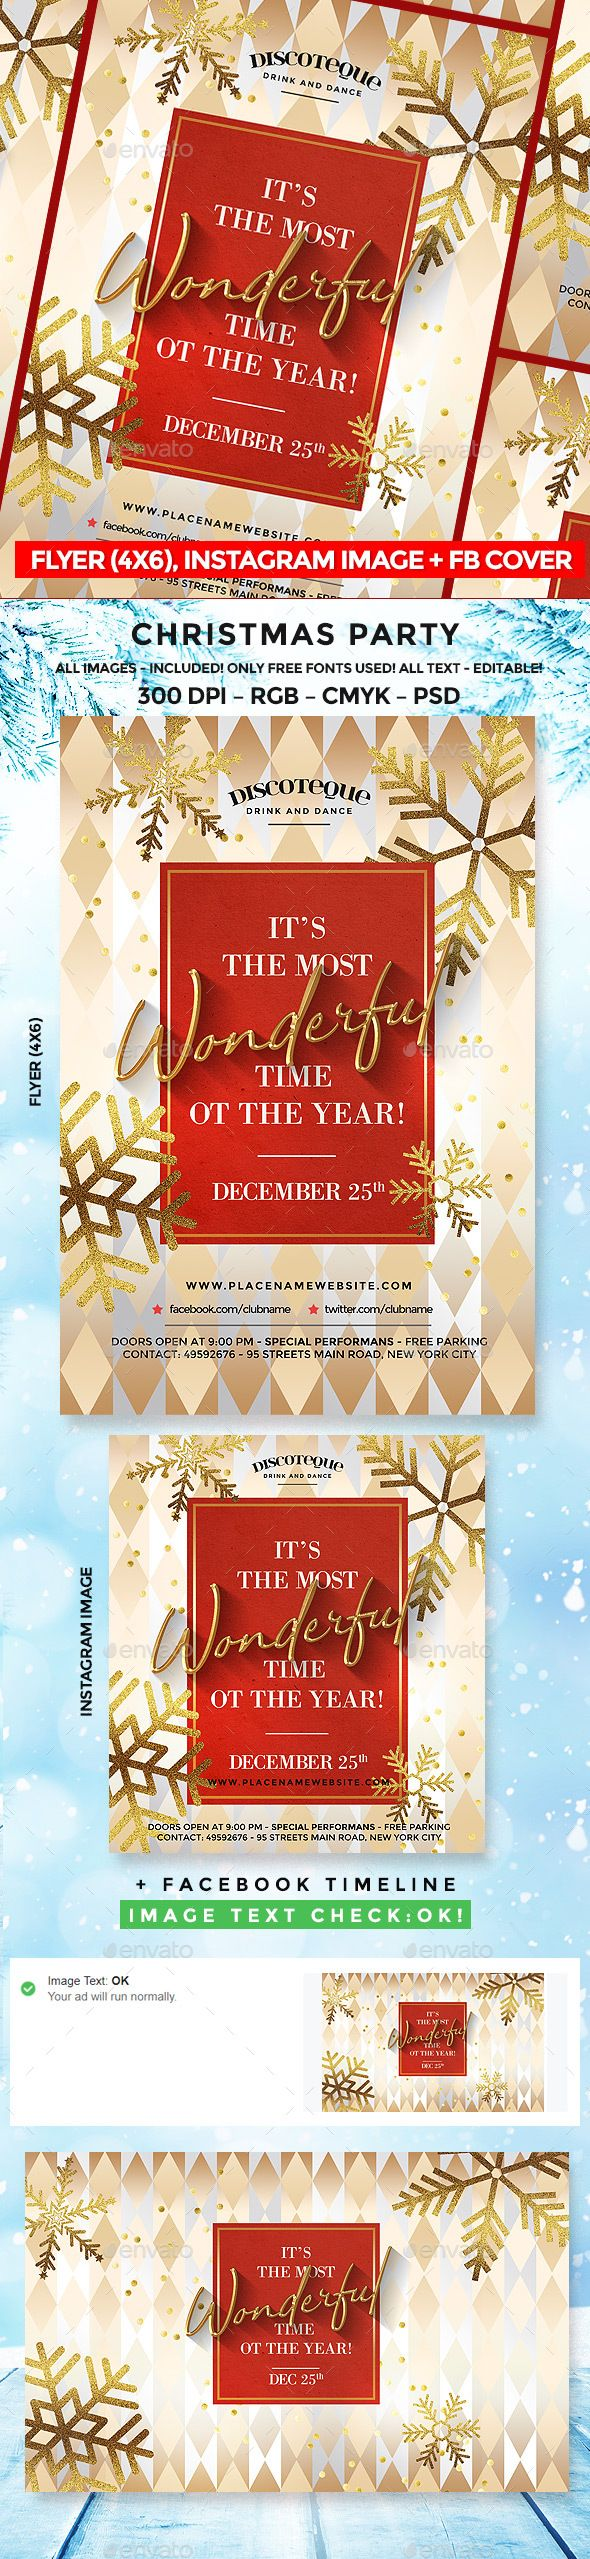 business party invitation letter templates%0A Christmas